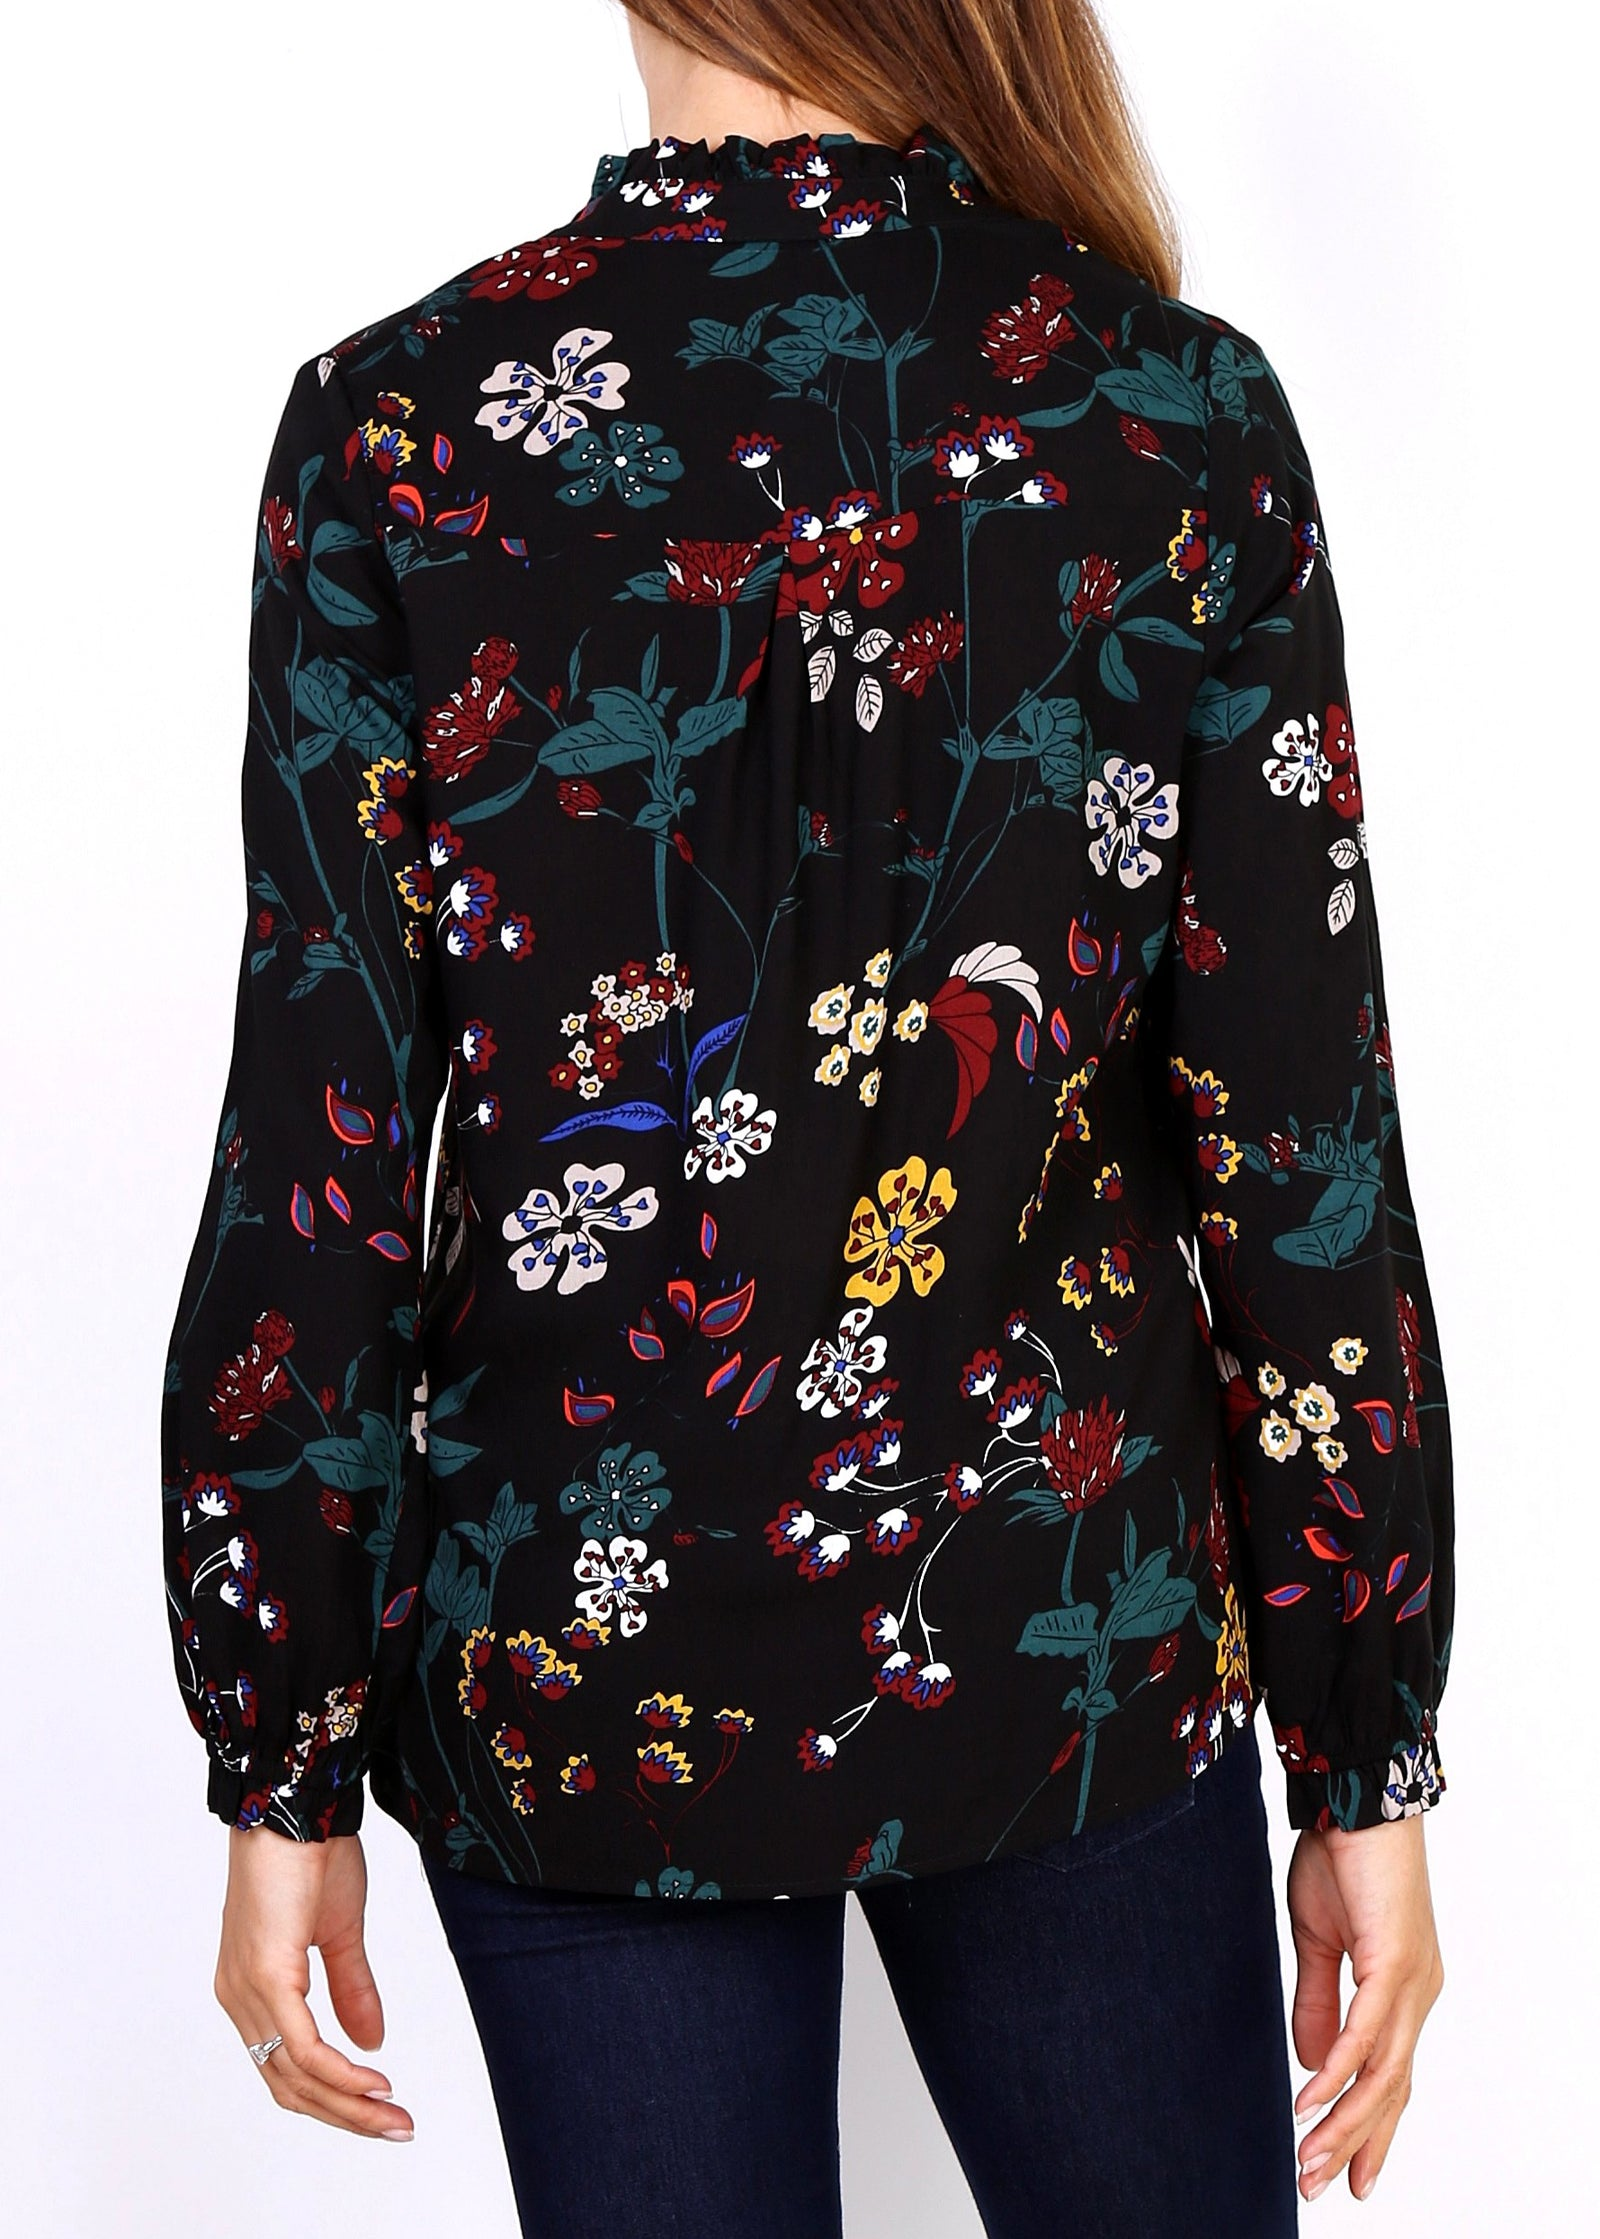 Esther - Winter Floral Blouse